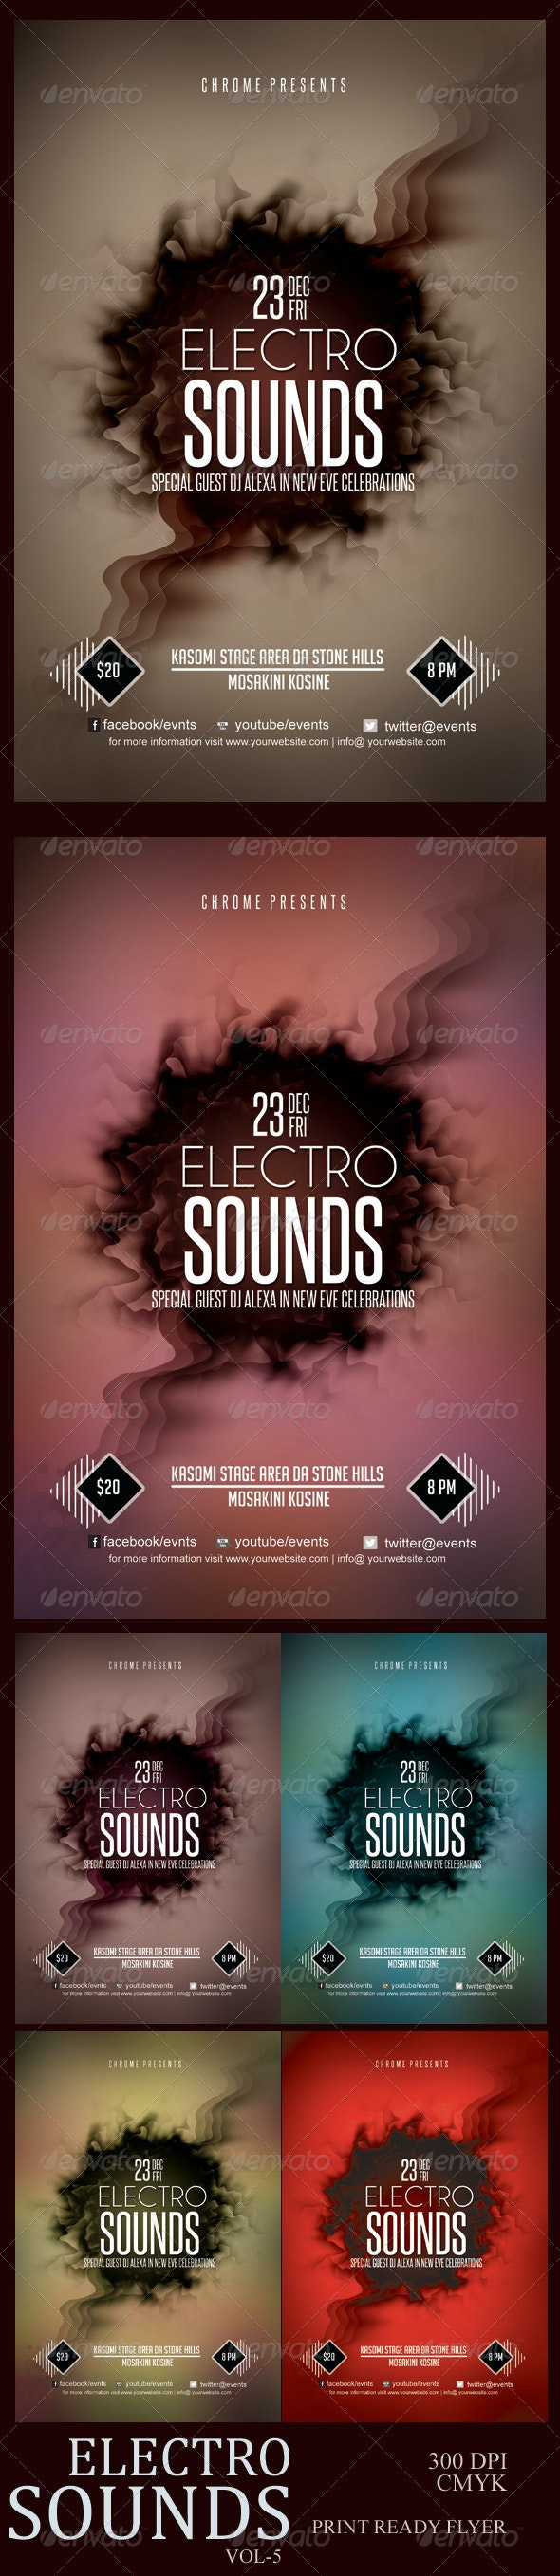 Electro Sounds Futuristic Flyer 5 - Clubs & Parties Events